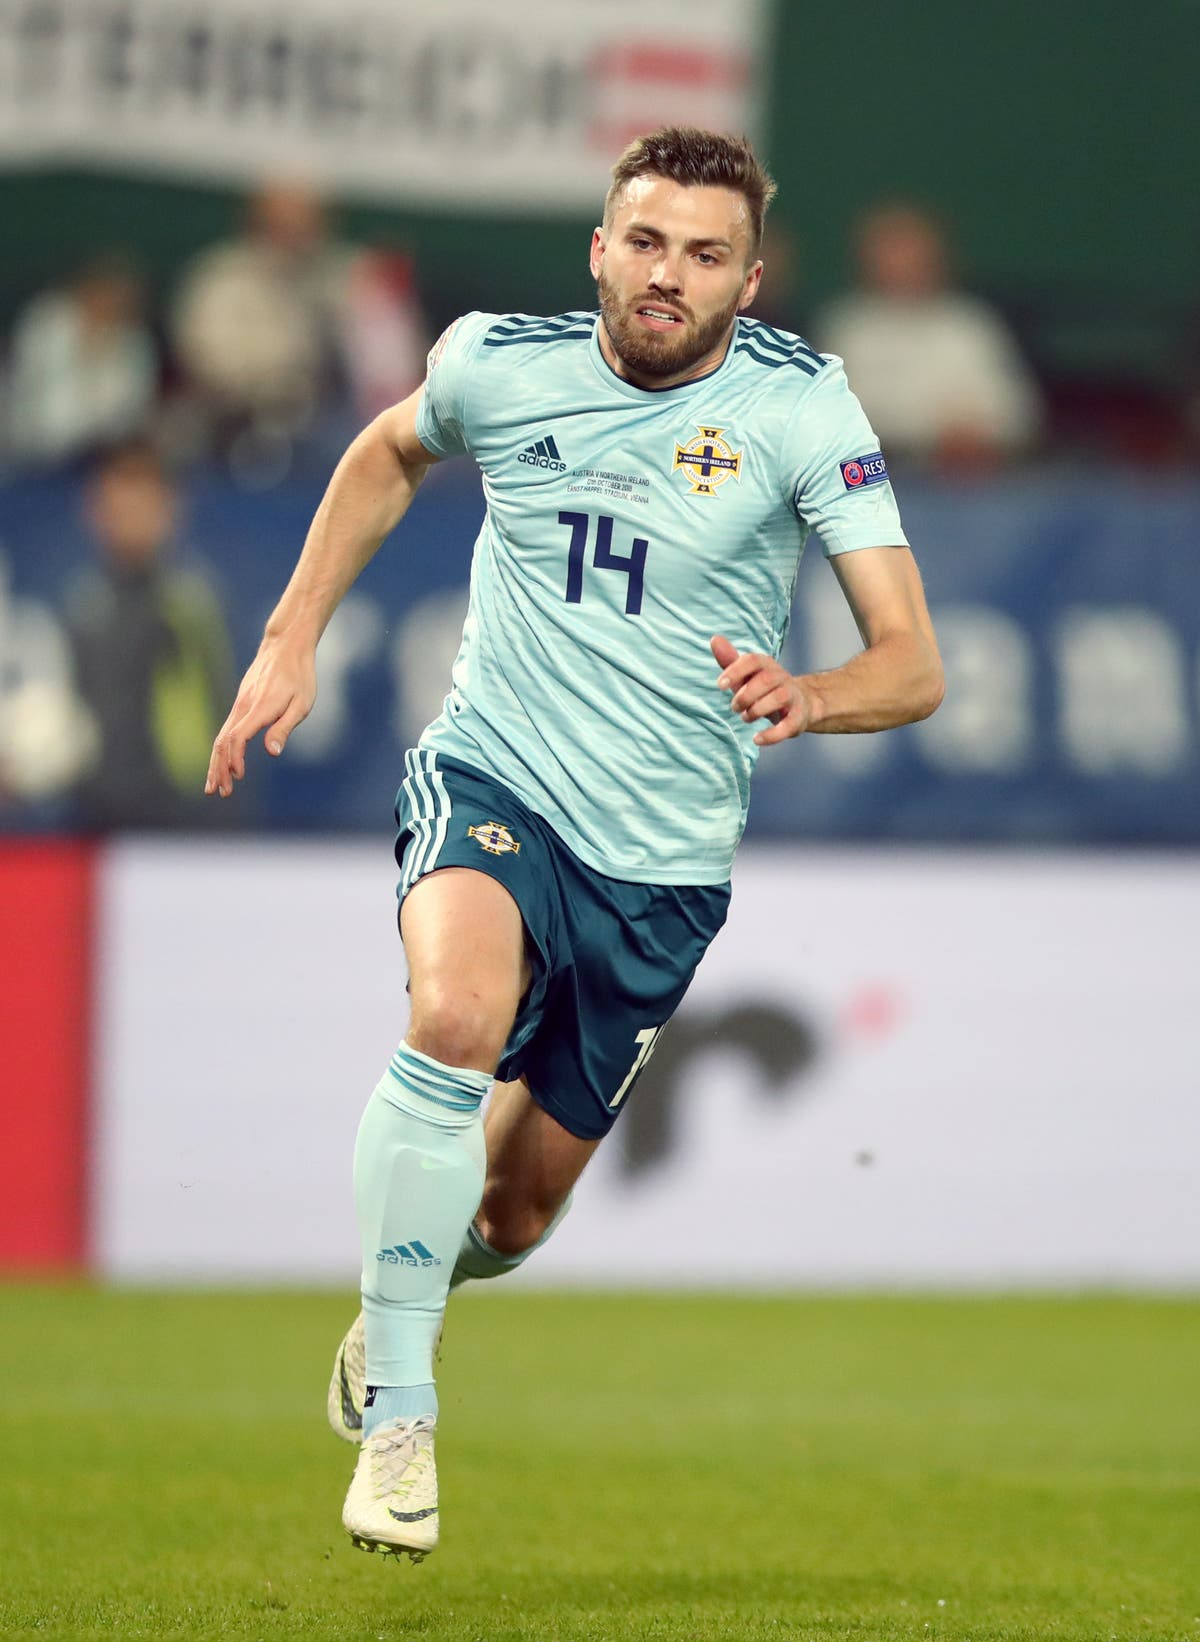 Stuart Dallas 'natural choice' to lead Northern Ireland in friendly – Baraclough